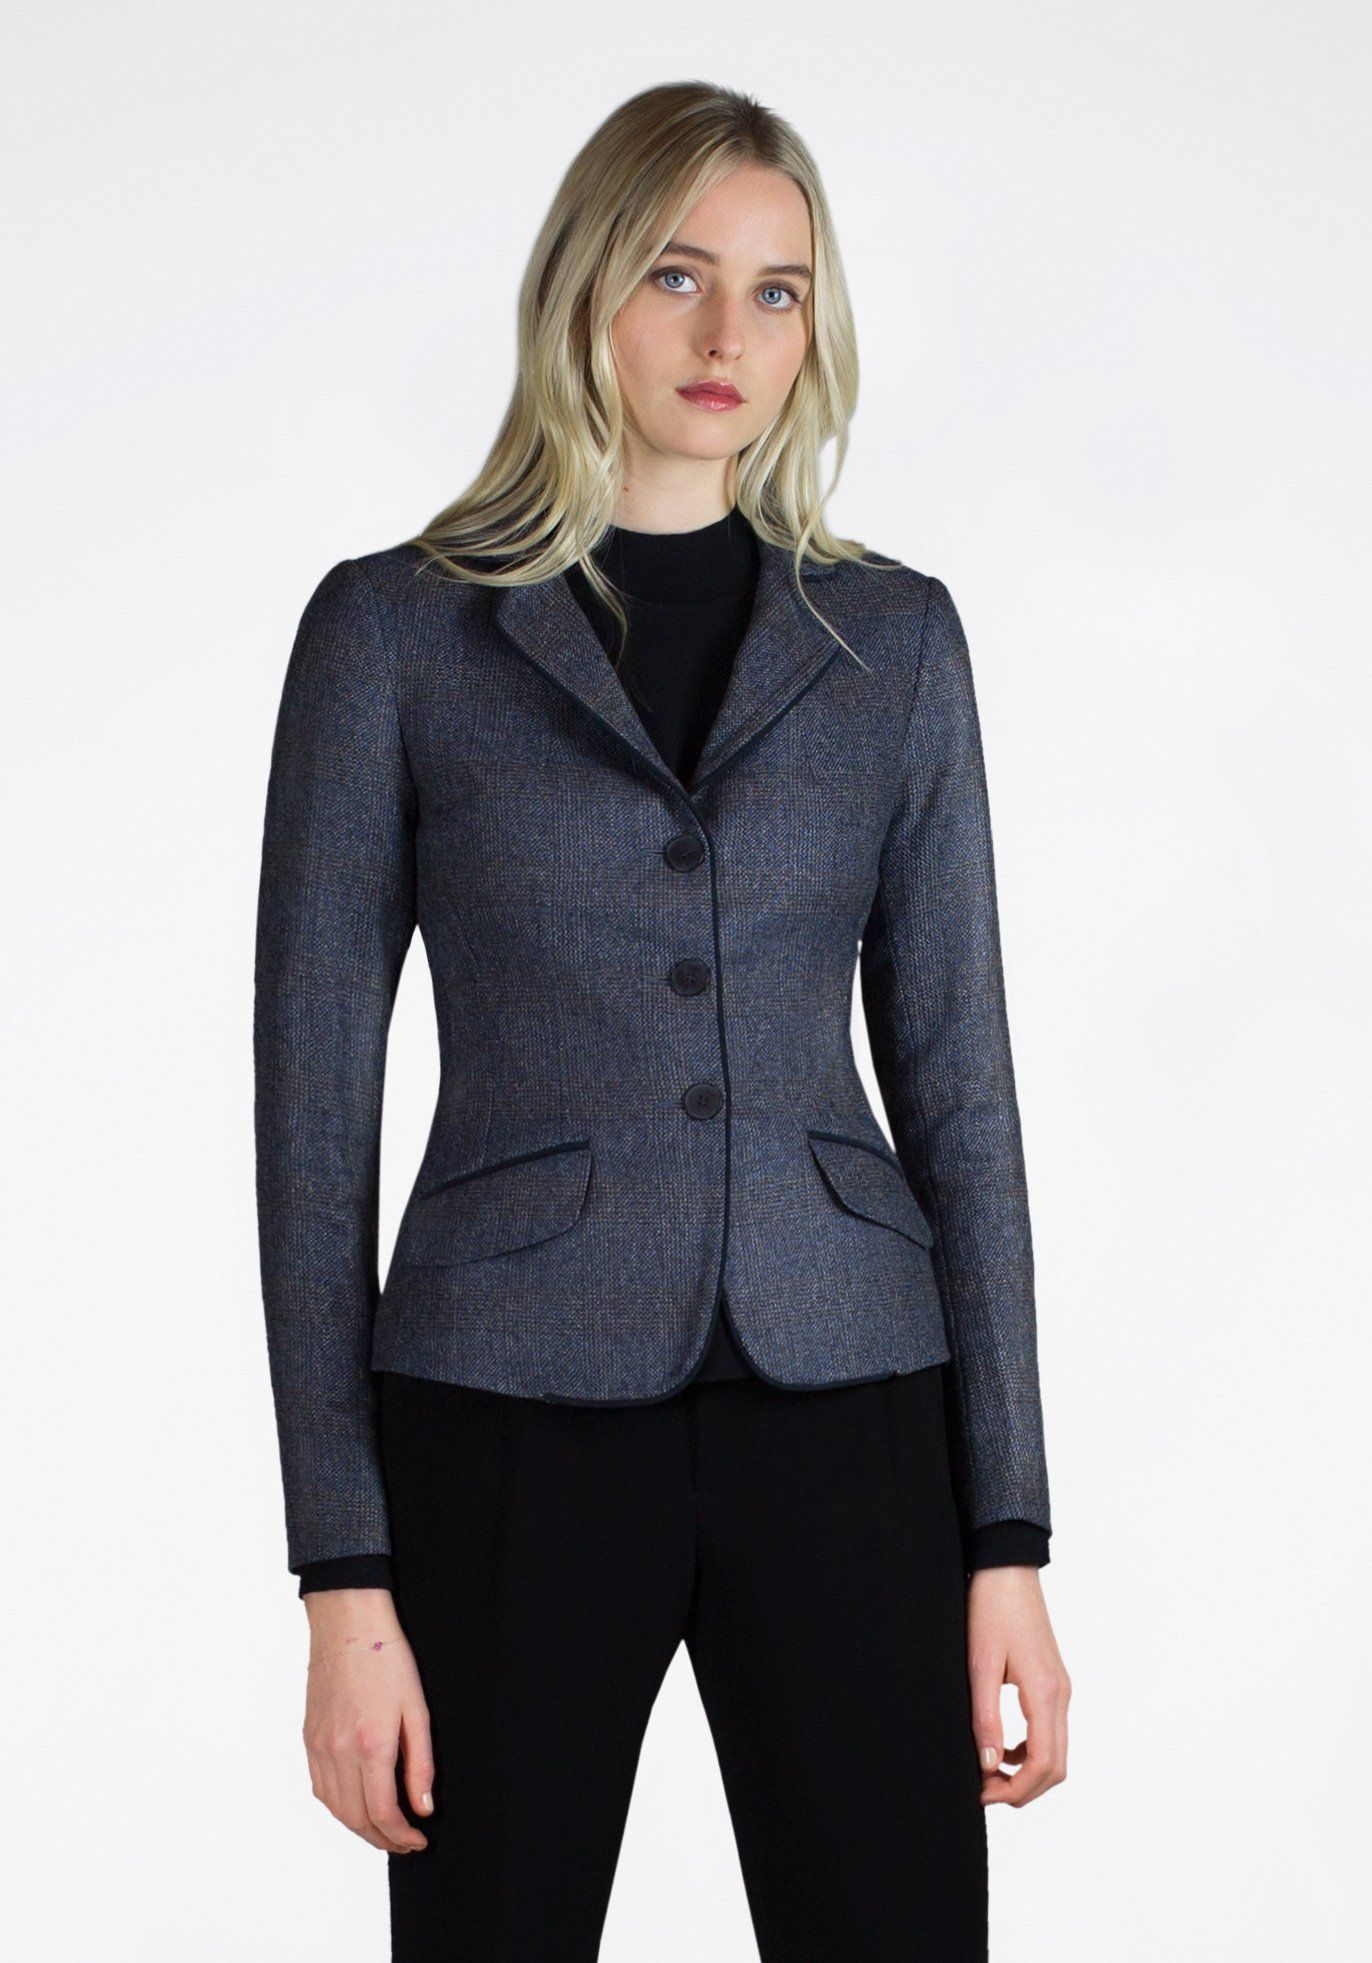 Daisy Jacket in Navy & Brown Check – Katherine Hooker